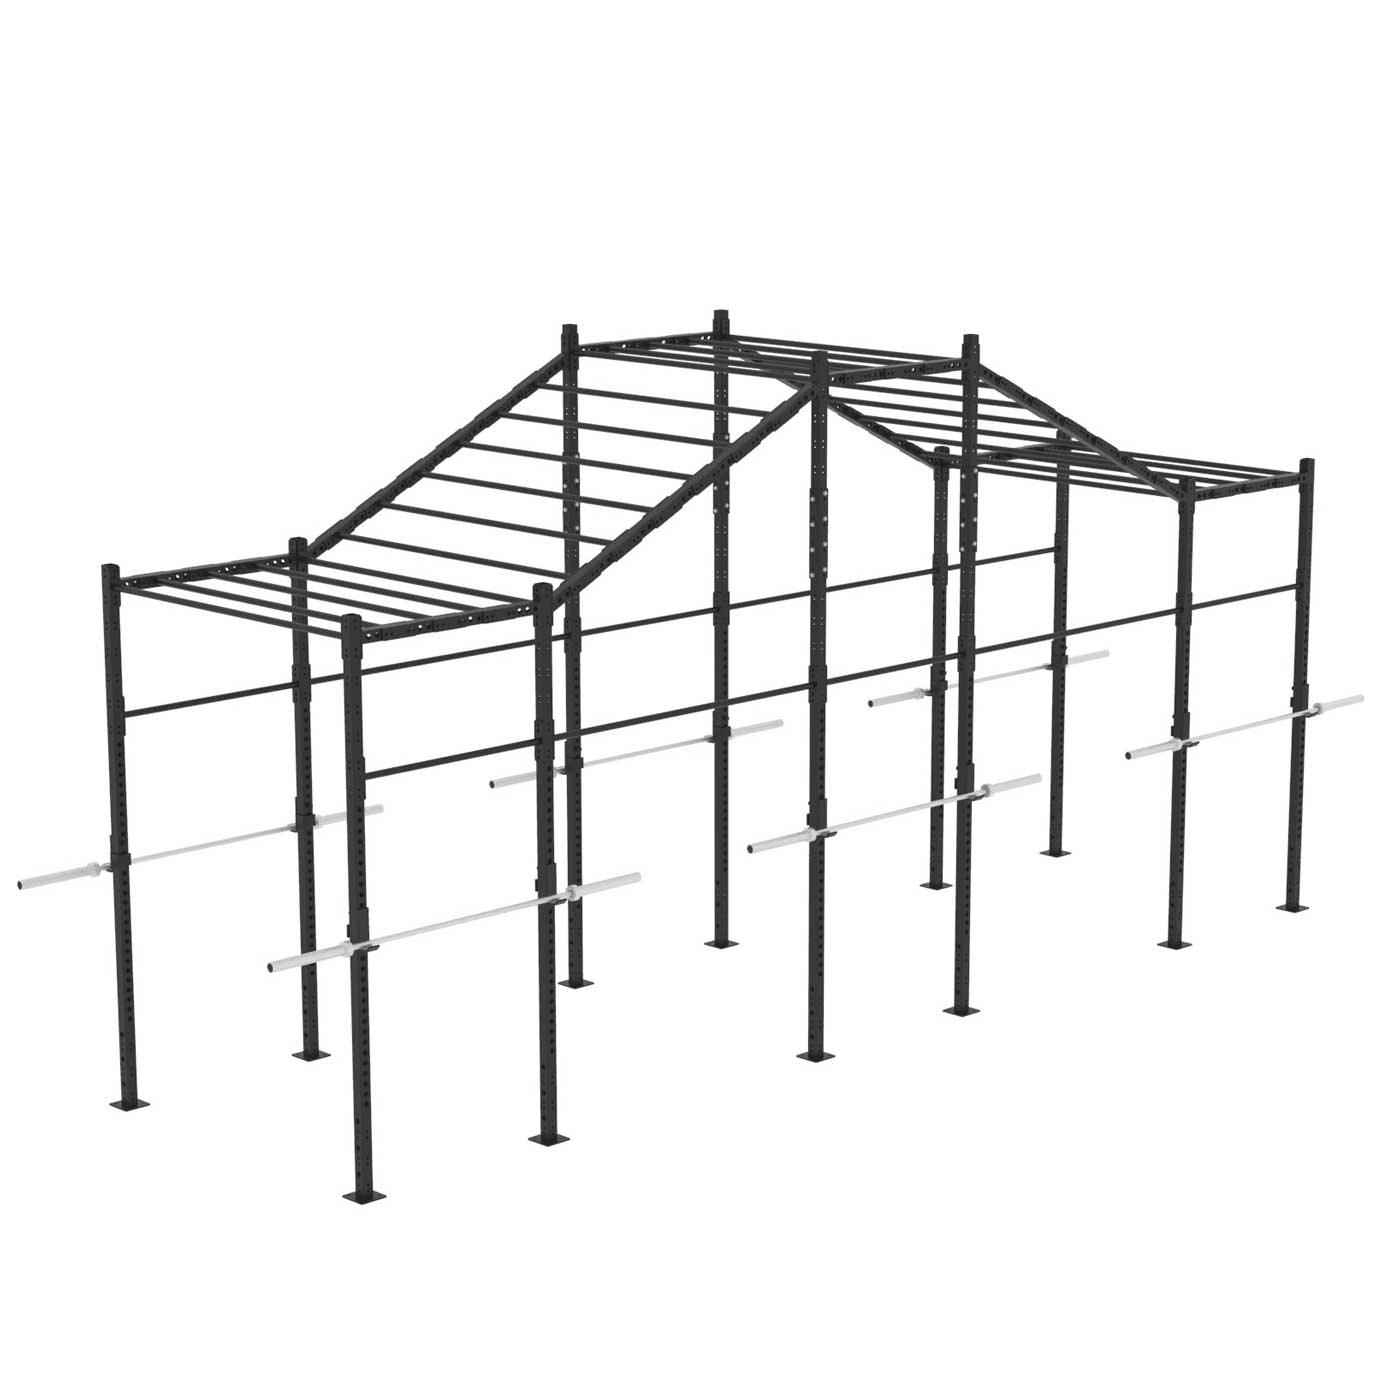 Monkey Bar X Training Equipment Monkey Bar Rig